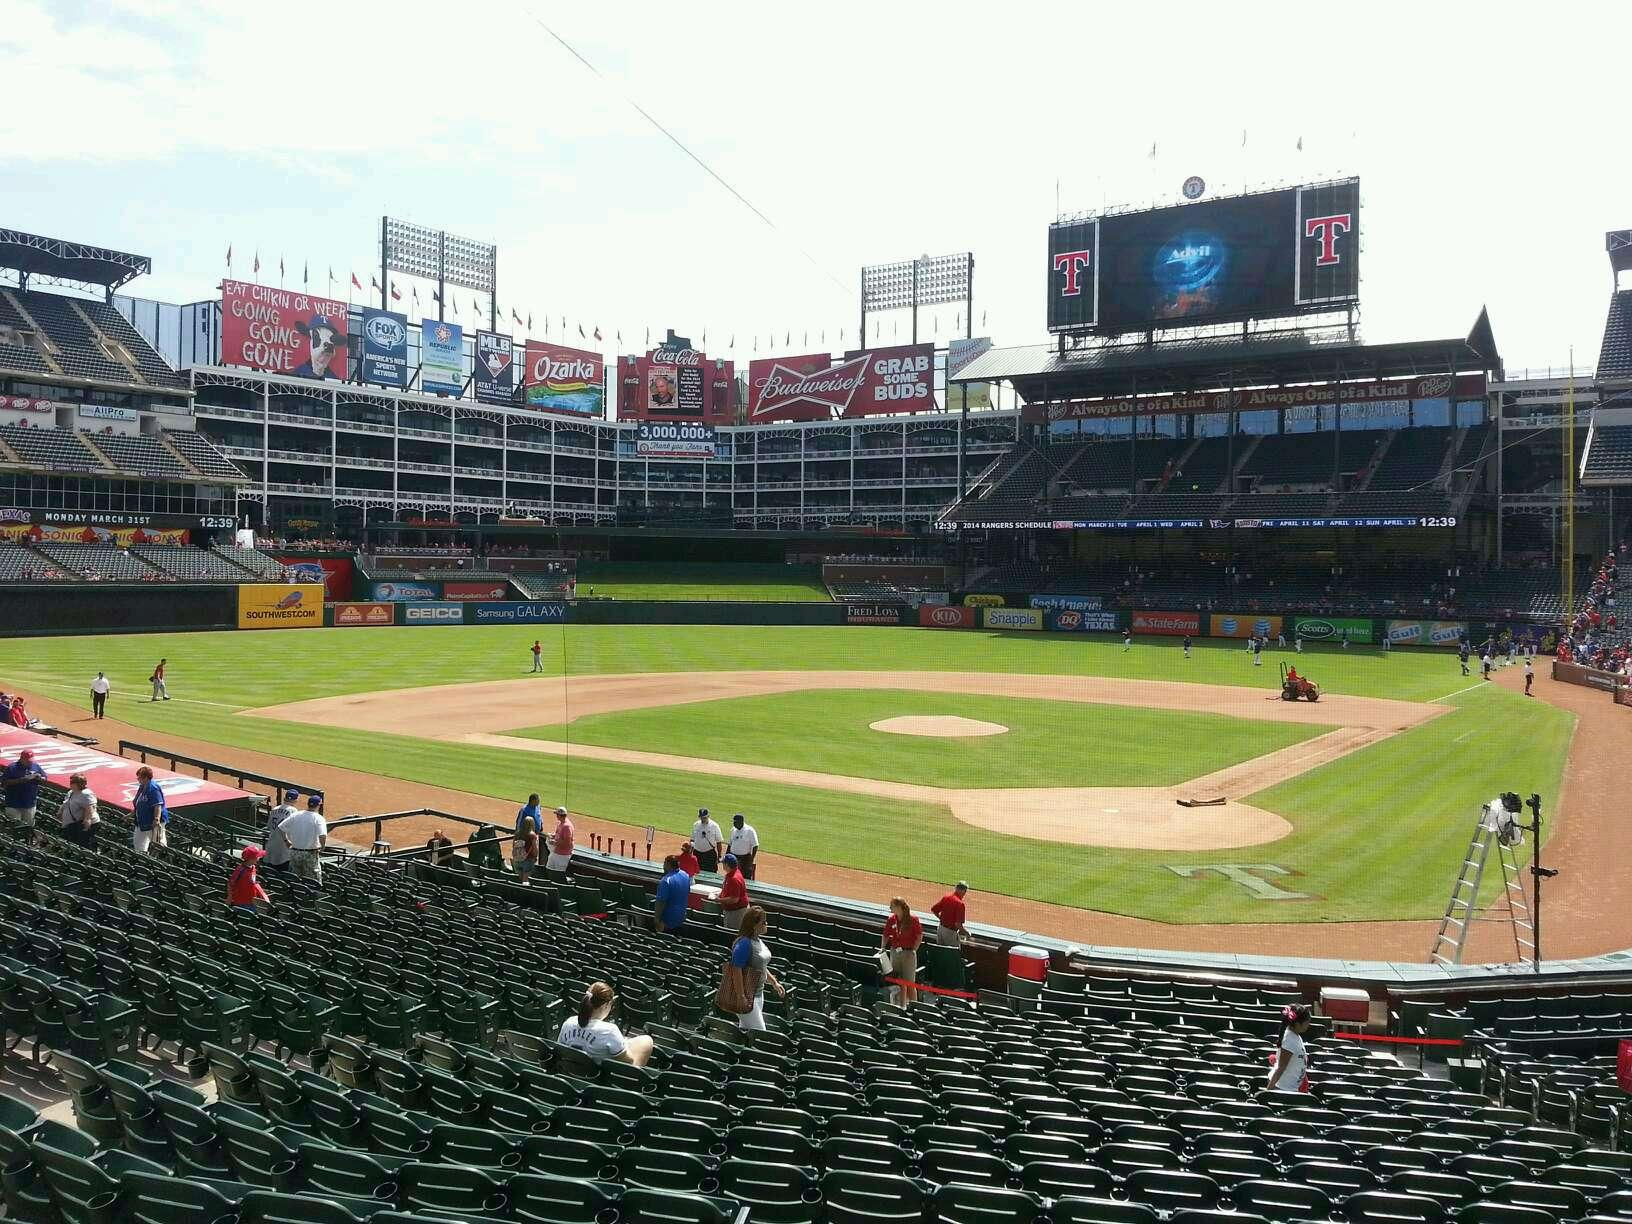 Globe Life Park in Arlington Section 24 Row 21 Seat 2